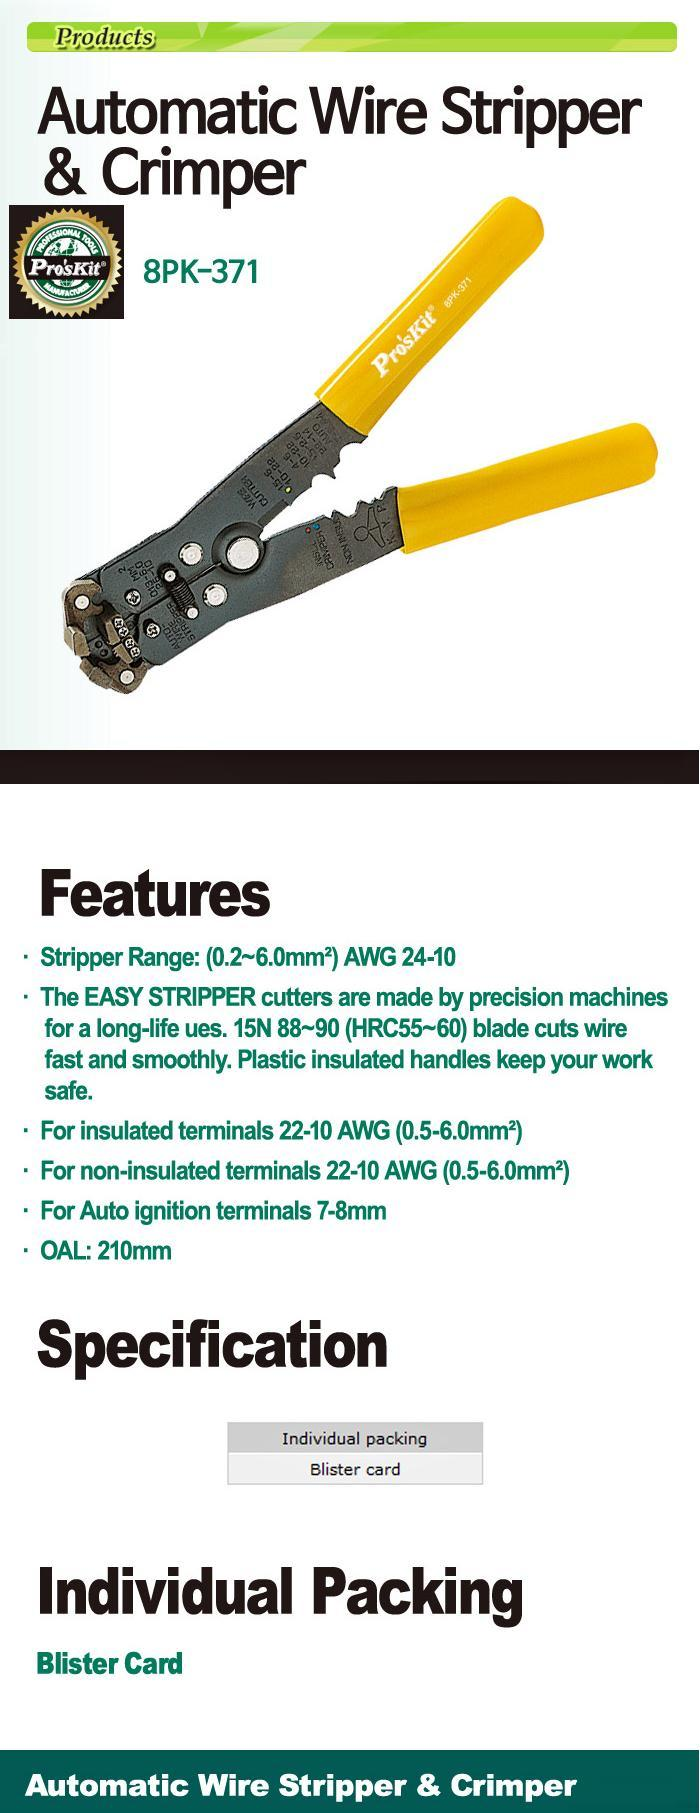 Proskit 8PK-371 Automatic Wire Stripper & Crimper 22-10 AWG ...